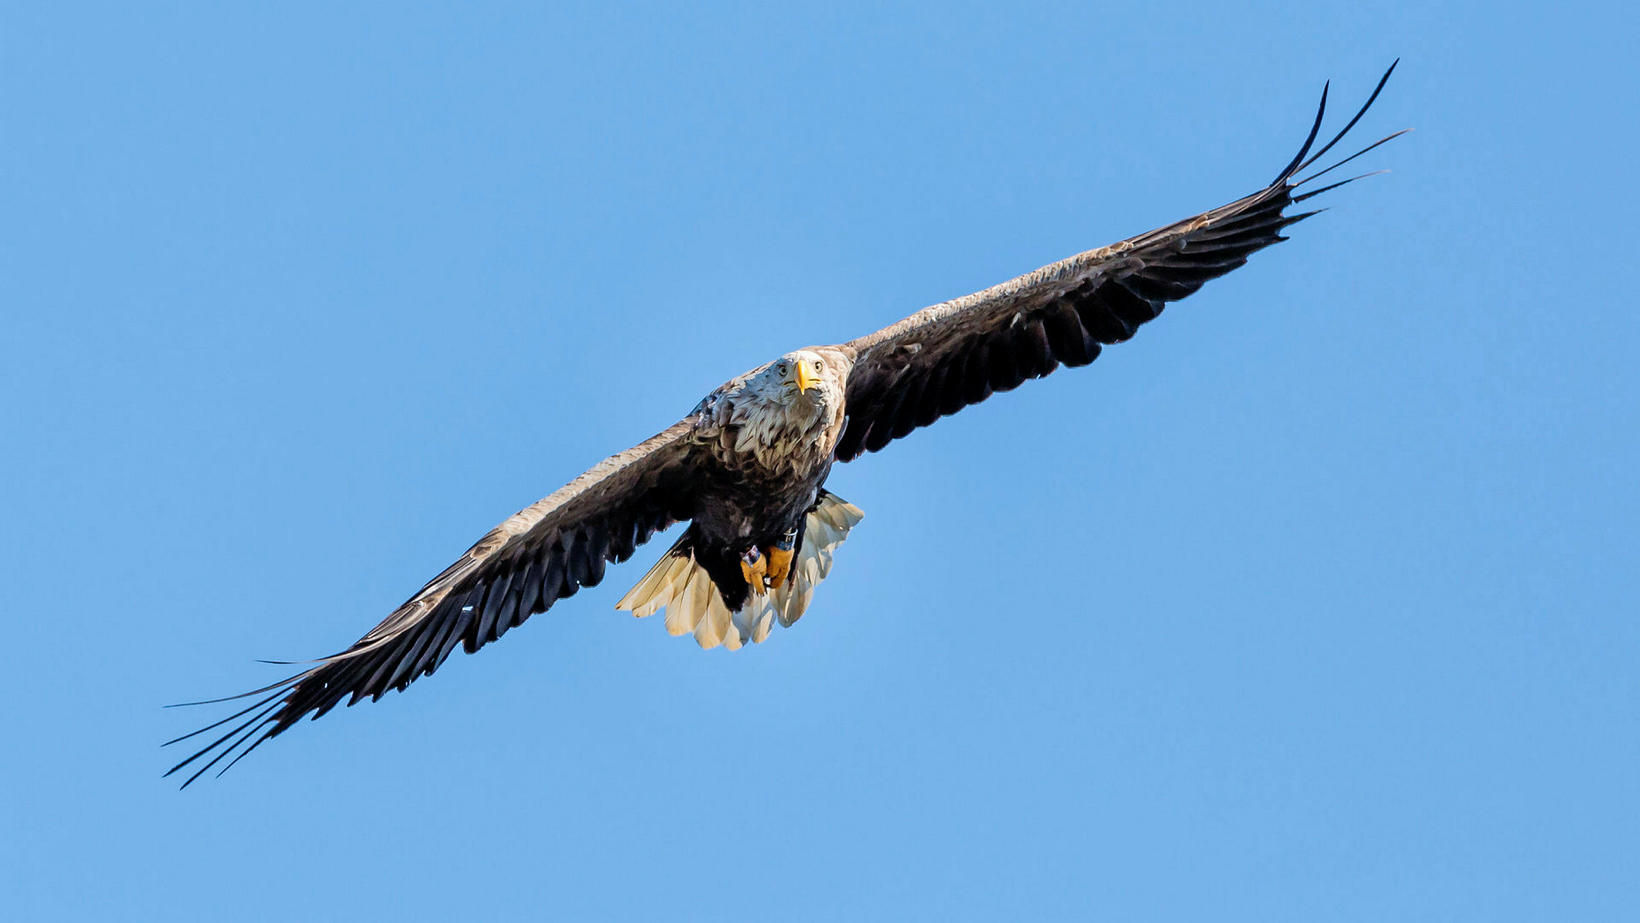 White-tailed eagle near Stykkishólmur, West Iceland, this summer.